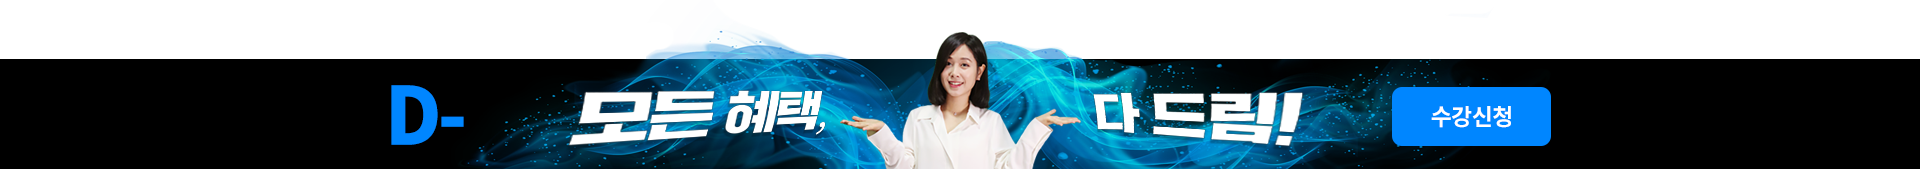 float-bottom-banner-home-pc.png